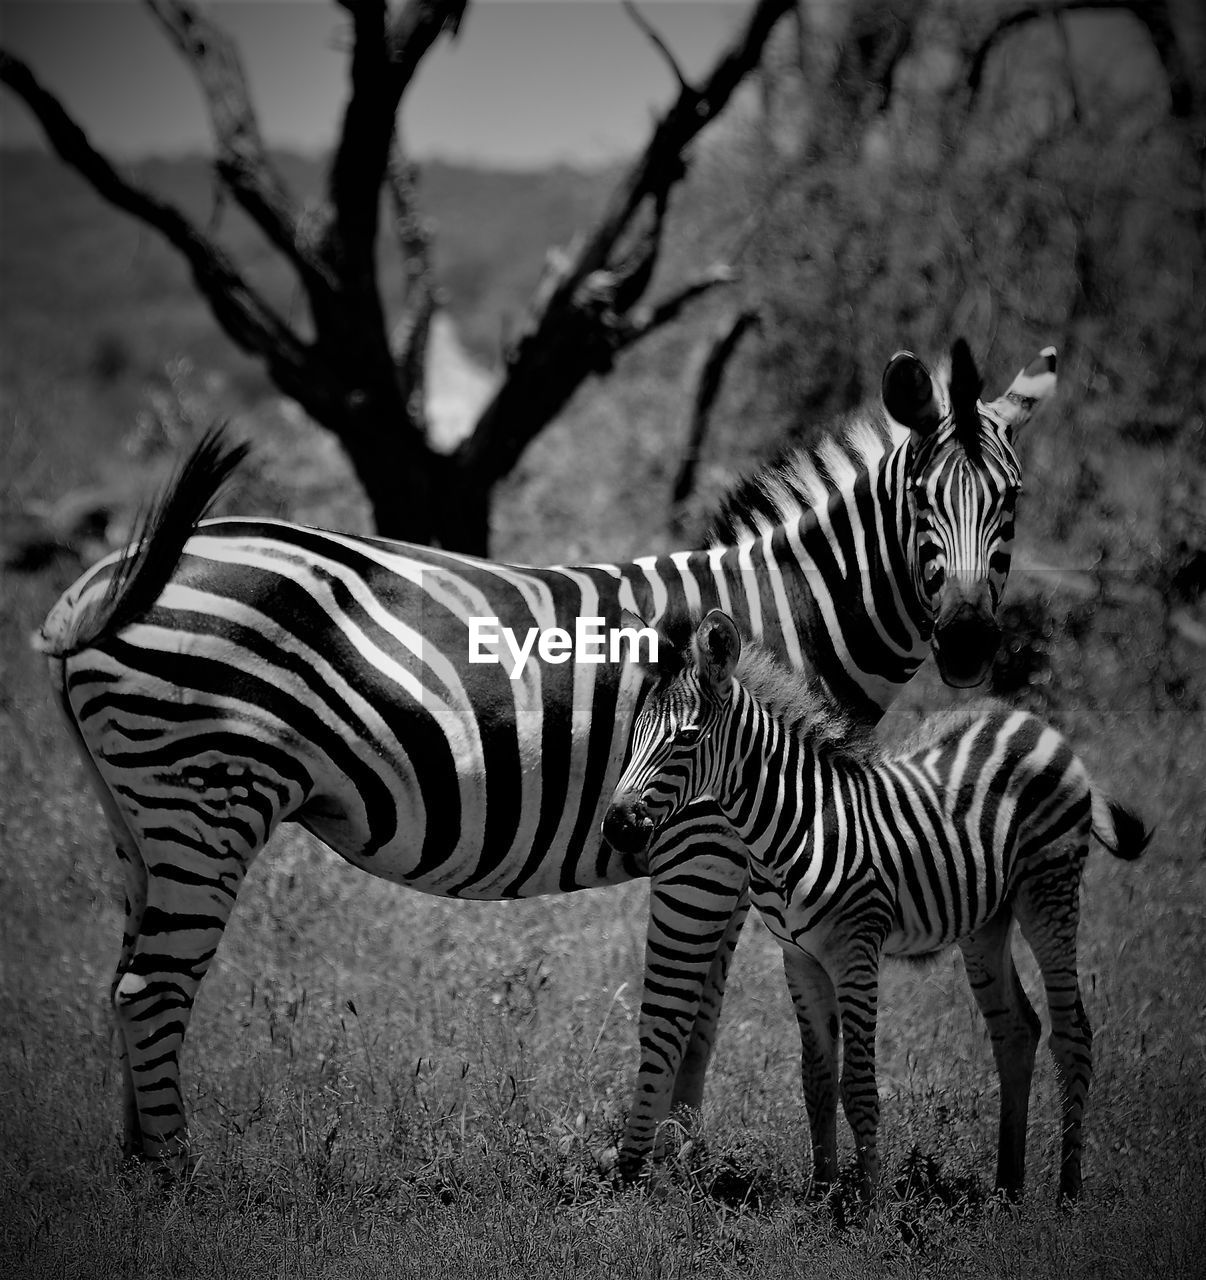 zebra, striped, animals in the wild, animal themes, animal wildlife, mammal, outdoors, nature, field, day, animal markings, safari animals, no people, standing, grass, full length